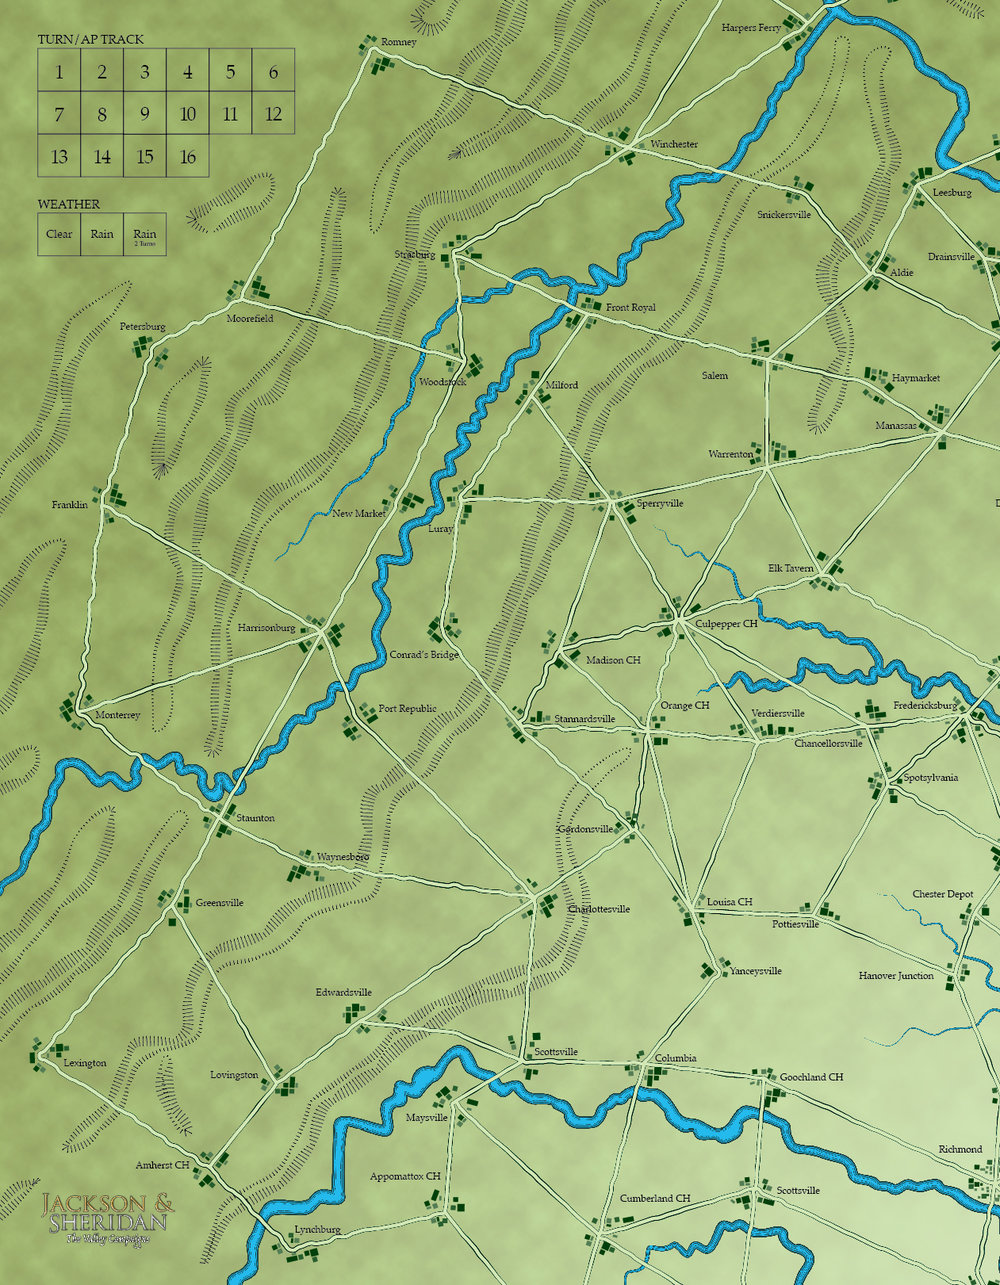 map_rasterRivers03-03.jpg